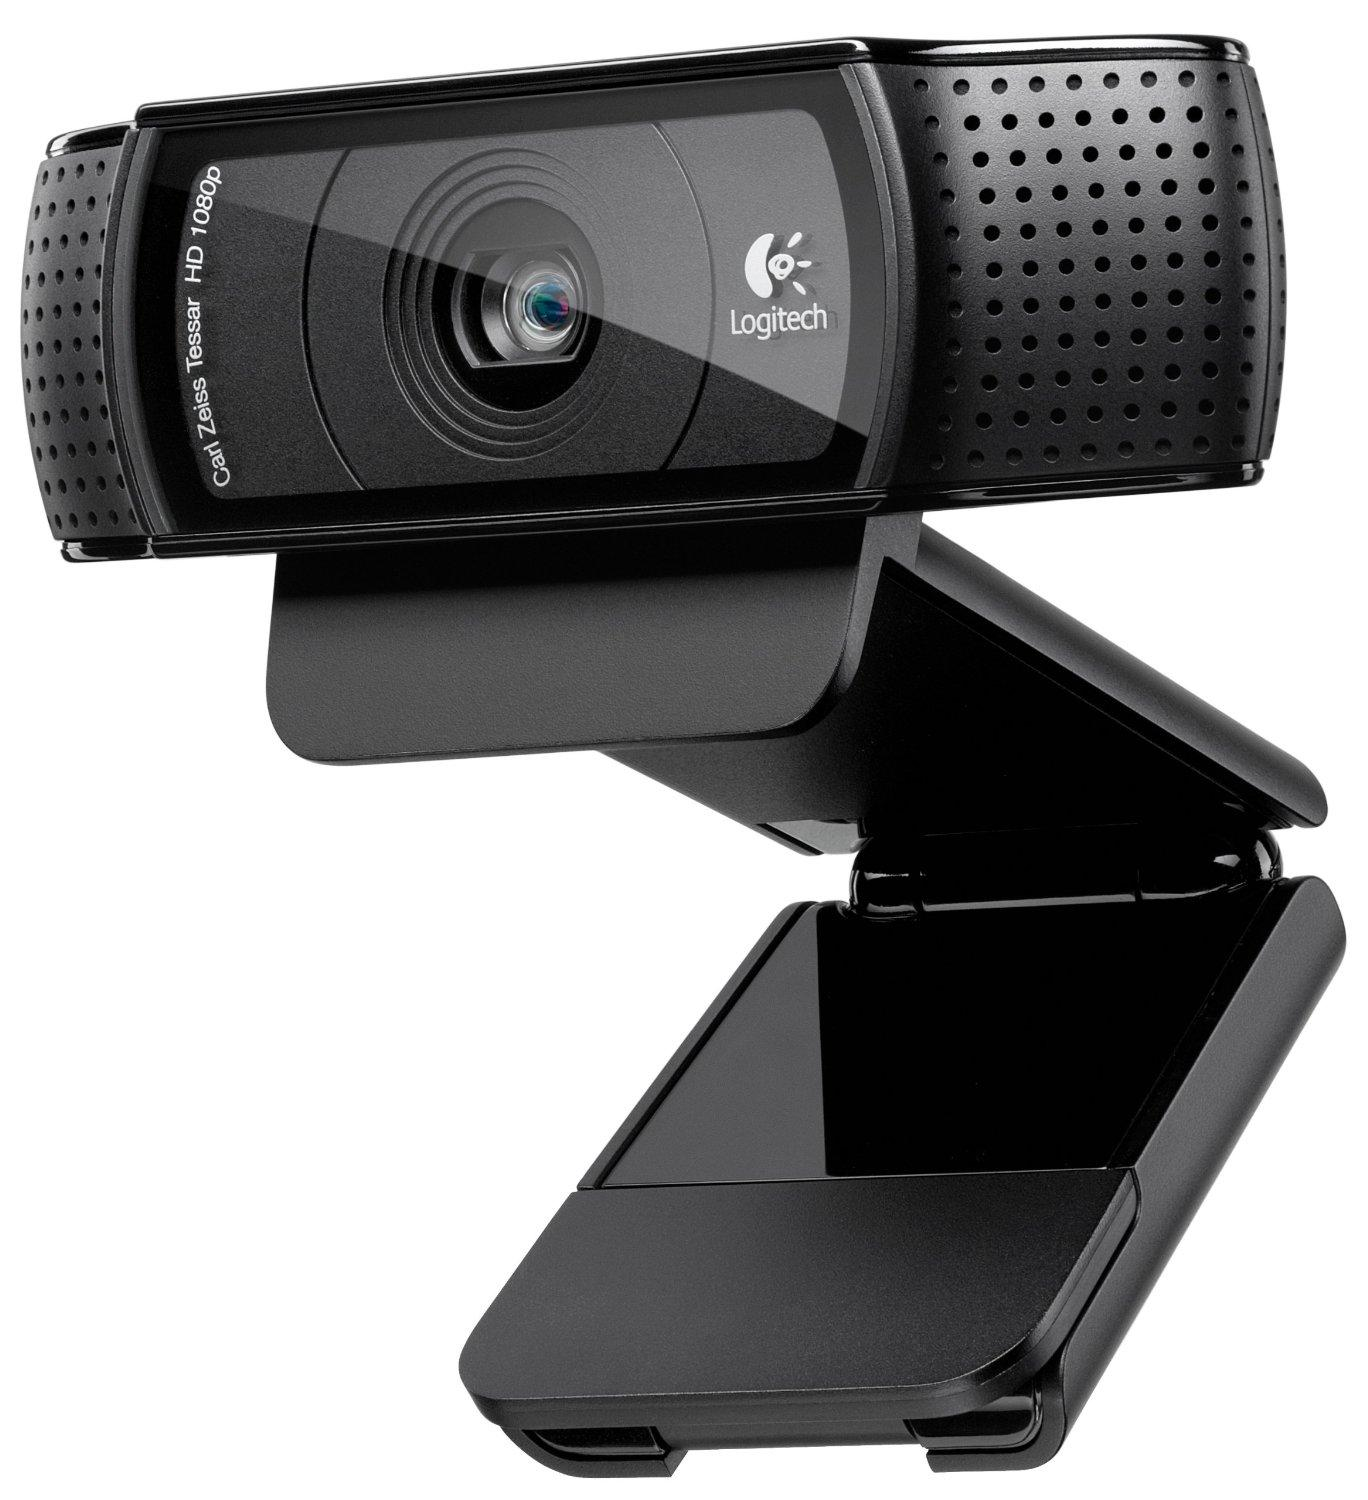 $39.99 Logitech HD Pro Webcam C920, 1080p Widescreen Video Calling and Recording